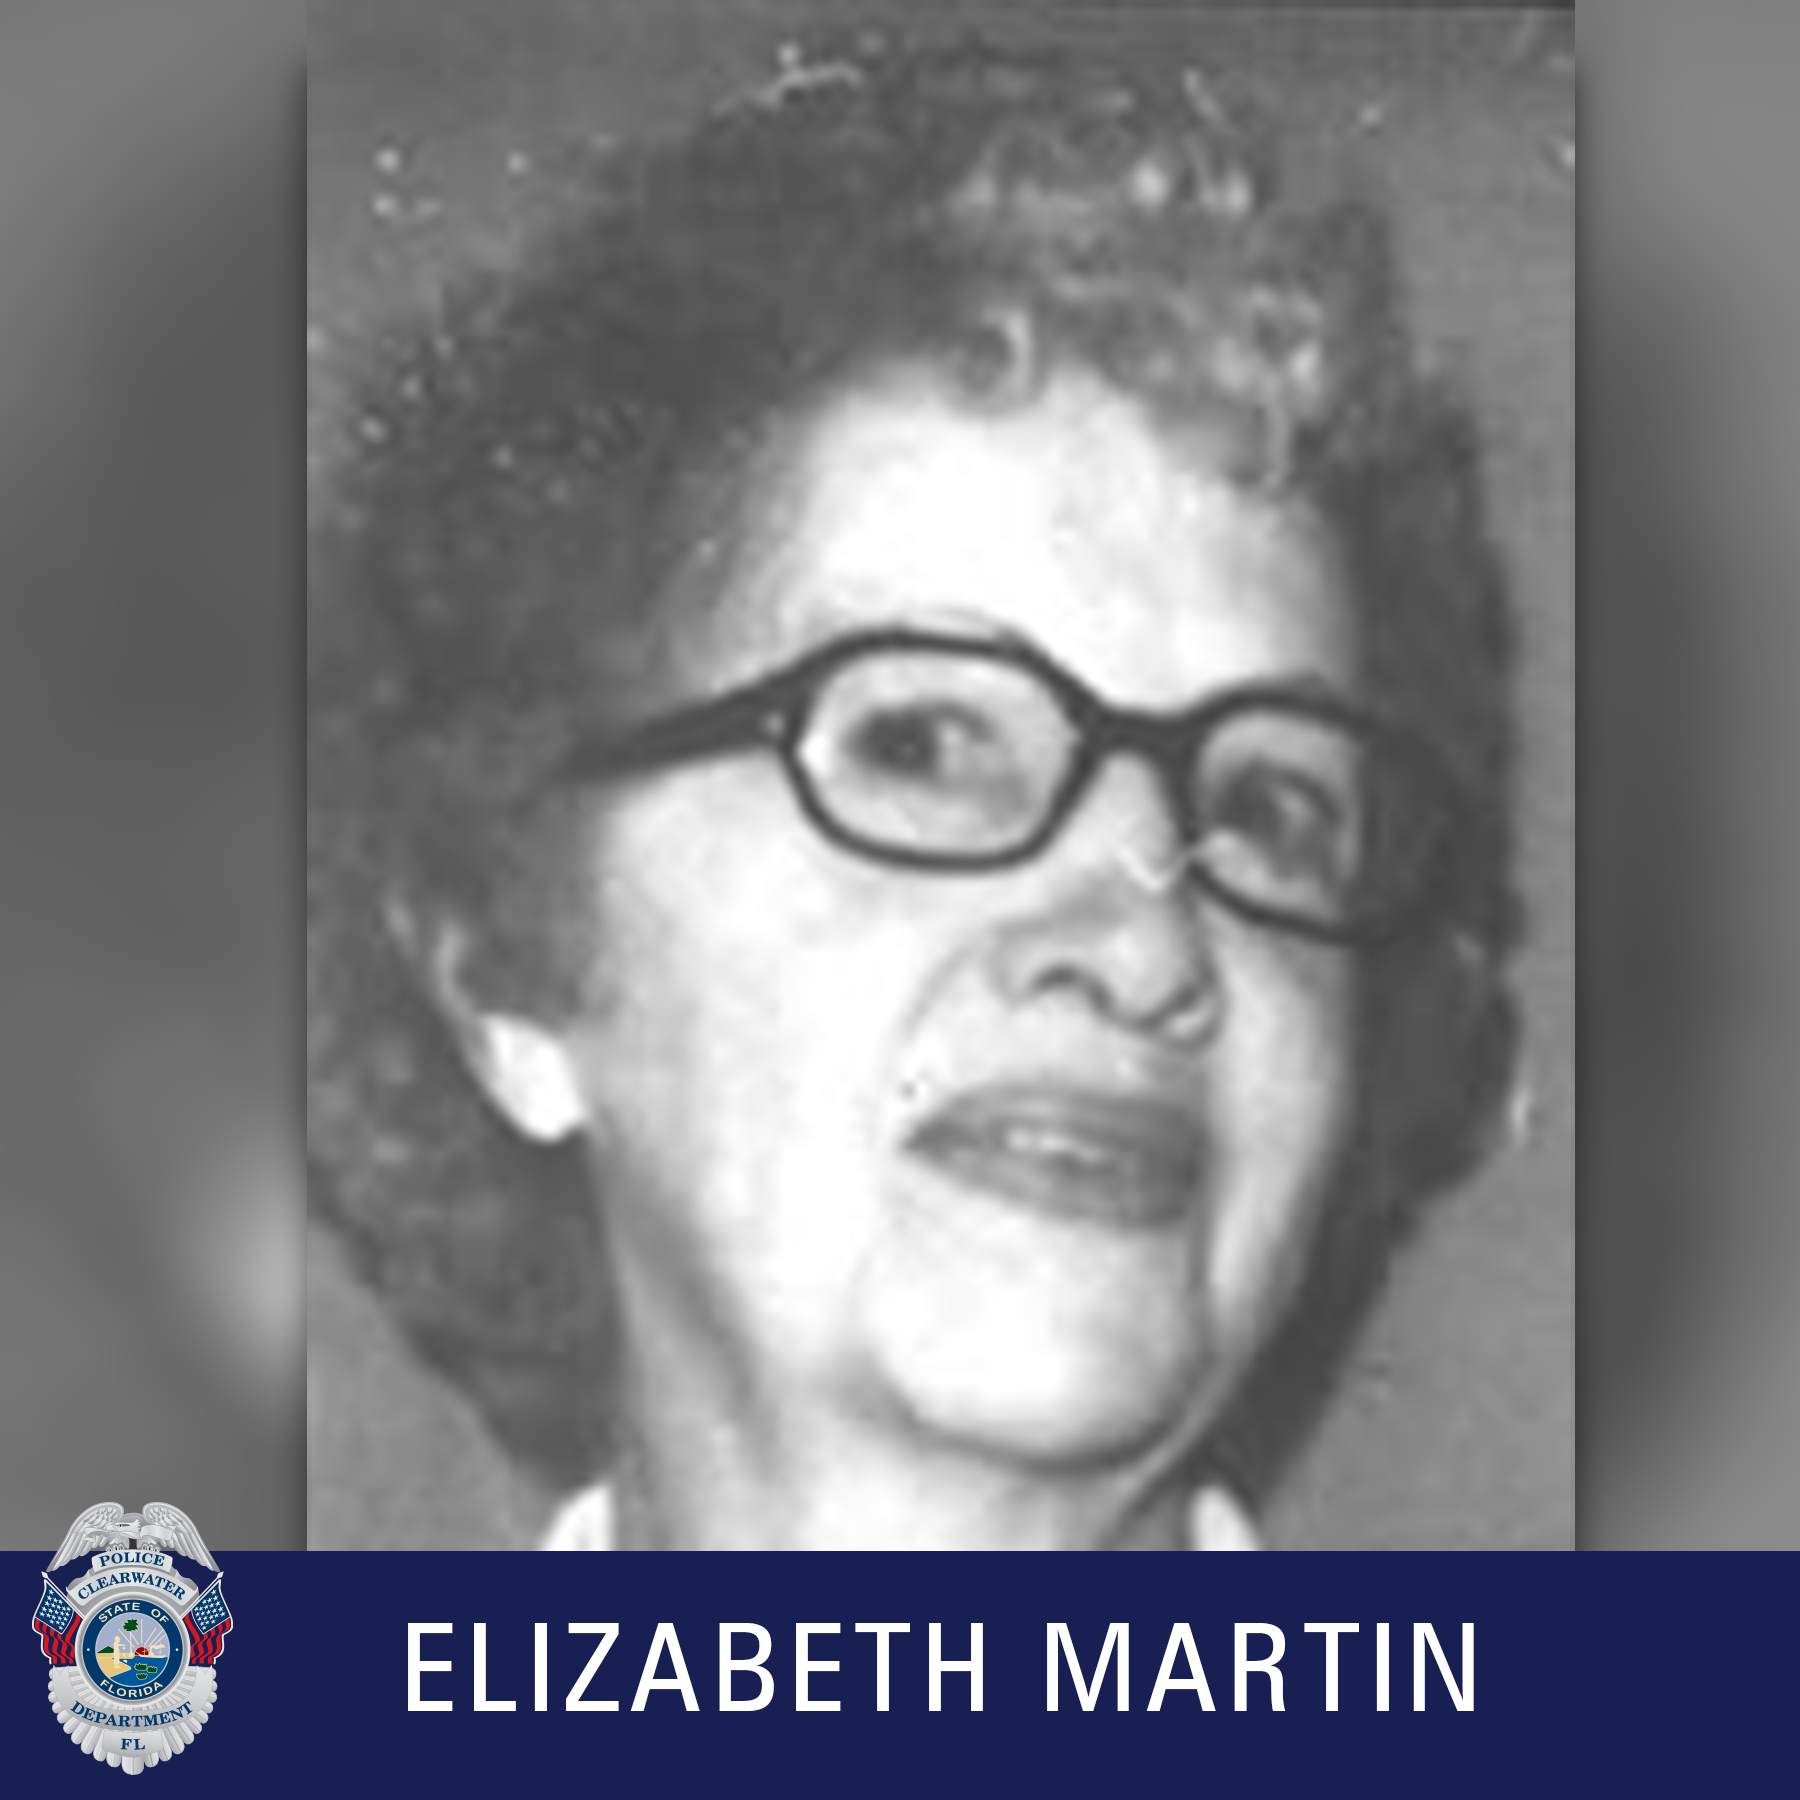 Elizabeth Martin, Clearwater Police Department Shield, Black and white photo of woman with glasses